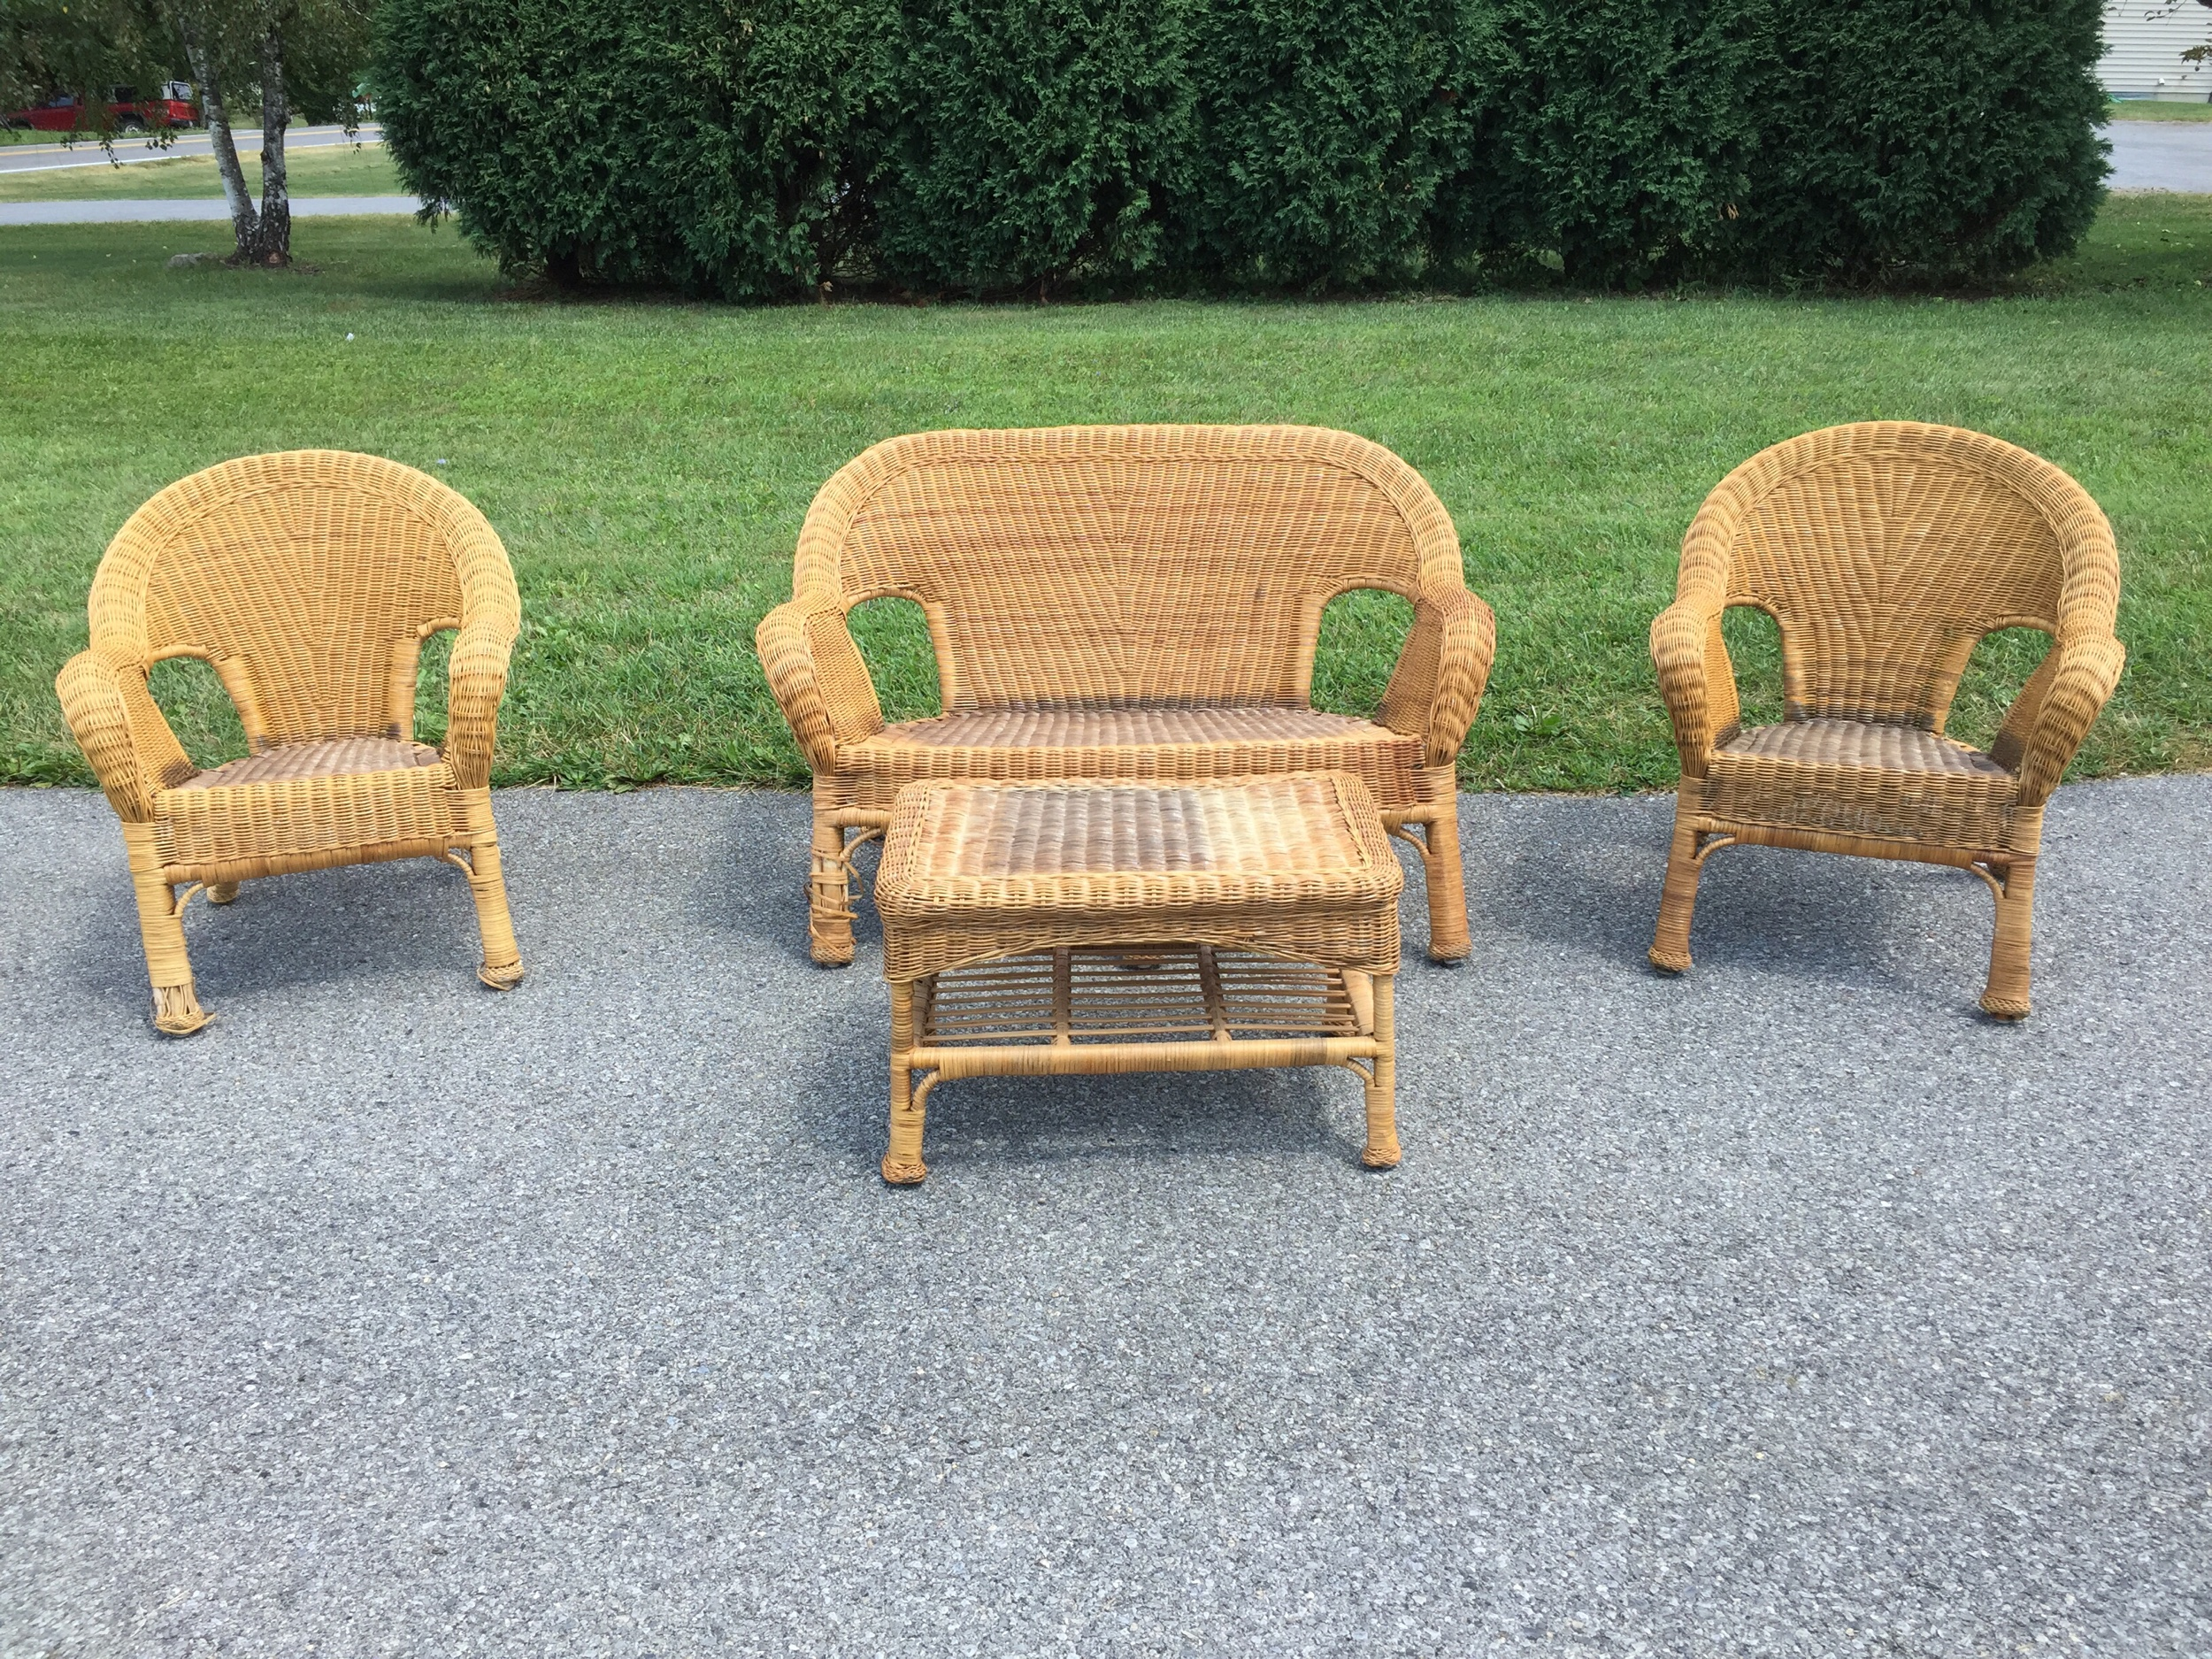 Great wicKer set. All wood/reed construction perfect for a sun porch, den, florida room and more. Can be painted If you'd like. Use with or without cushions. I sUspect you may be able to find pre made to fit or Use the ORIGINALS as a pattern to diy. This set can be split! Let's talk anout it. Price tbd.